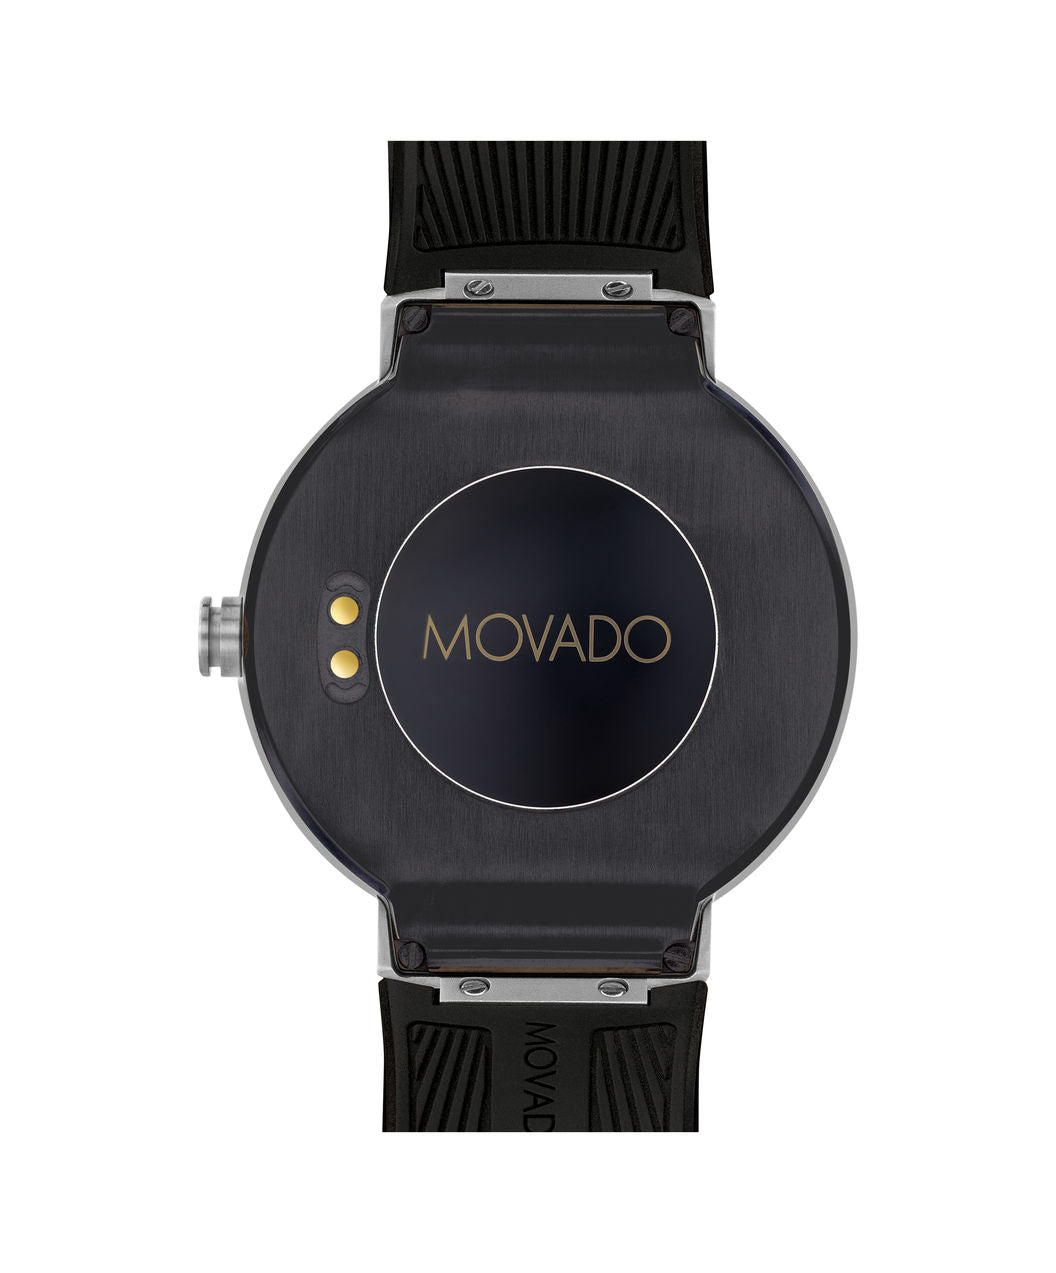 Movado Connect From Italy With Love Jewelers